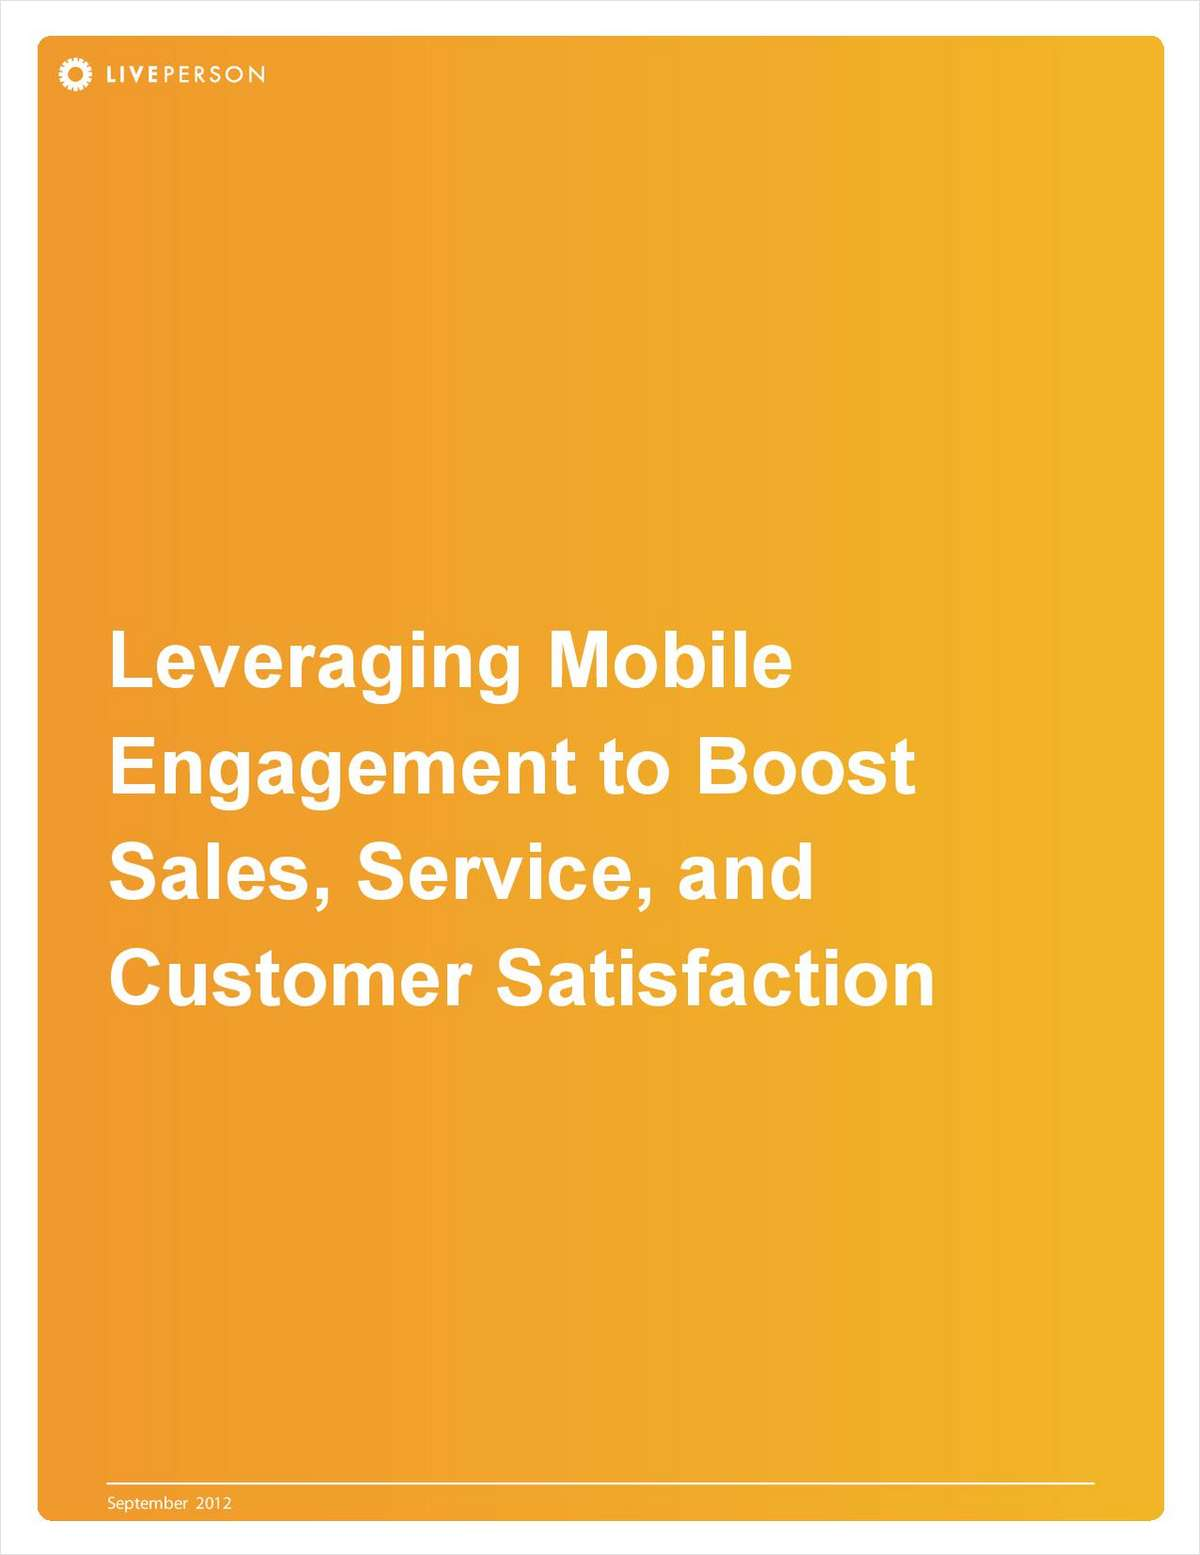 Leveraging Mobile Engagement to Boost Sales, Service, and Customer Satisfaction